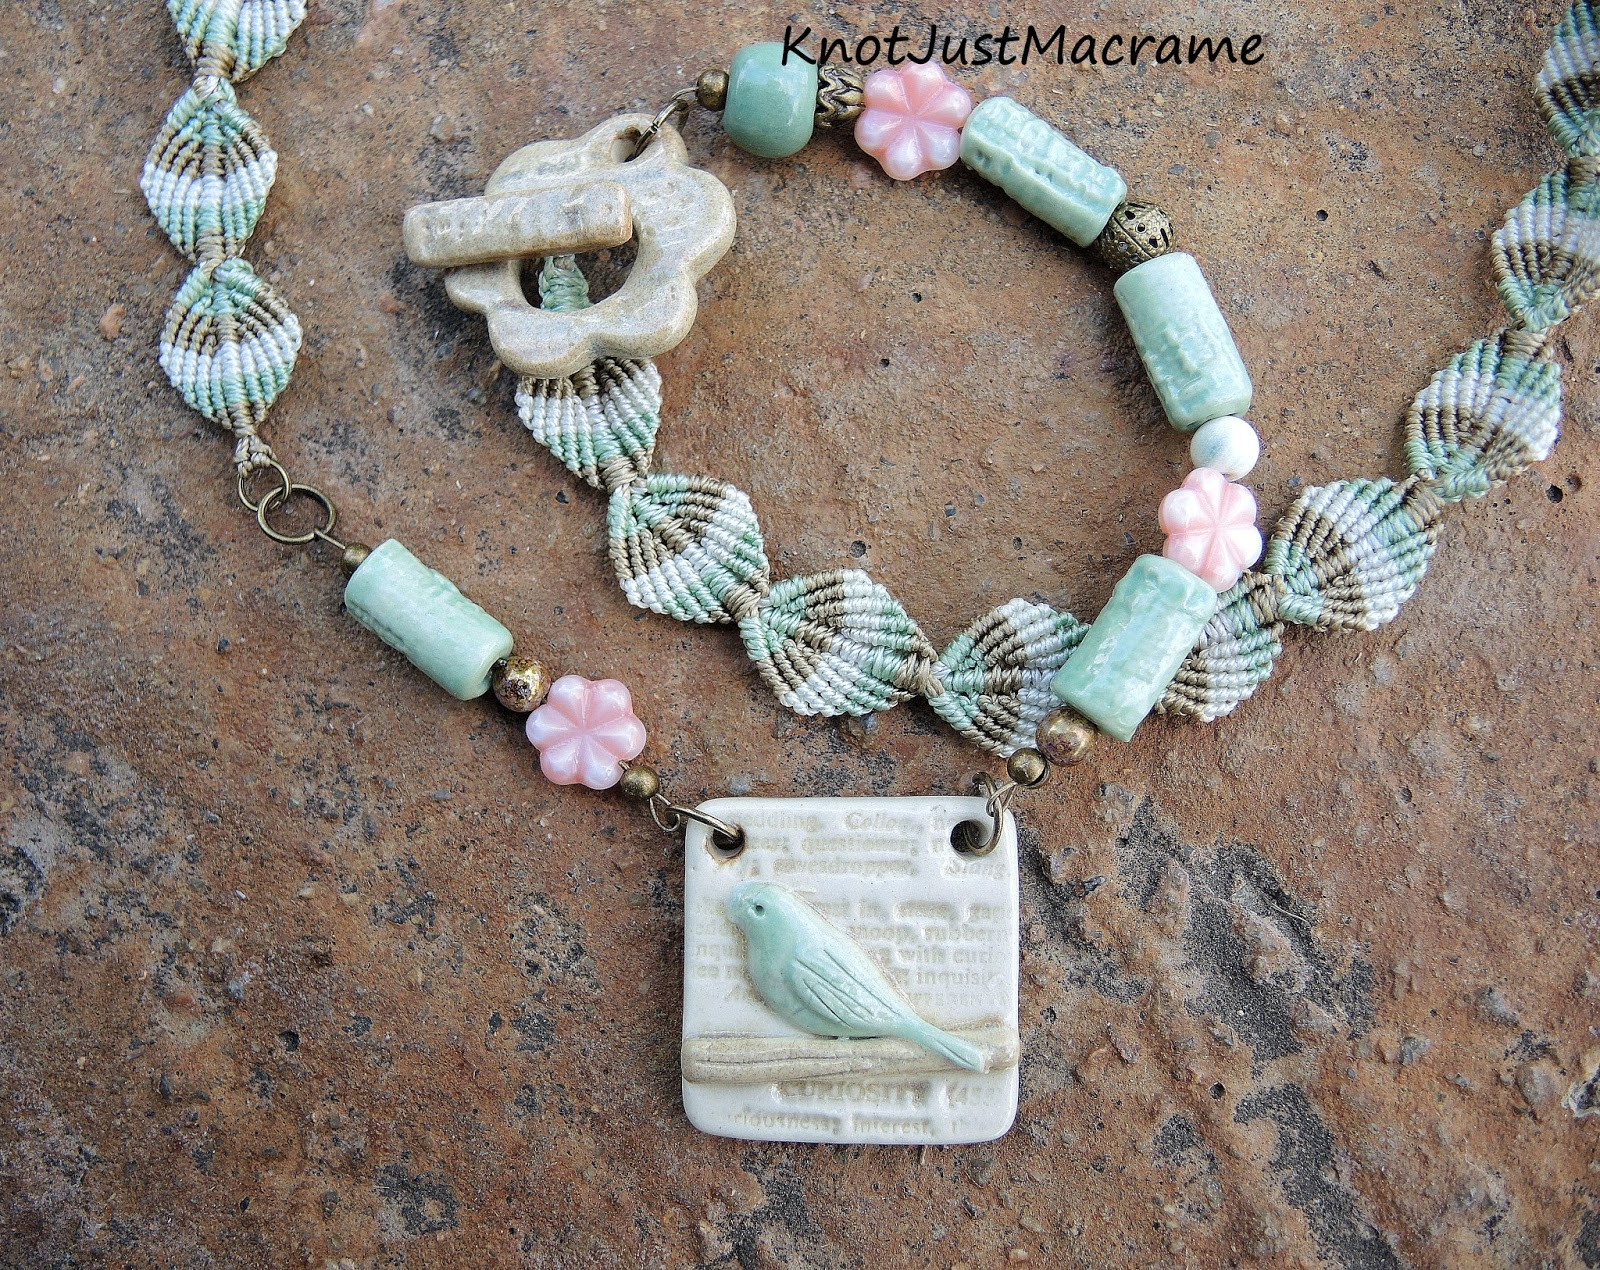 Necklace with micro macrame by Knot Just Macrame and ceramic components by Blu Mu